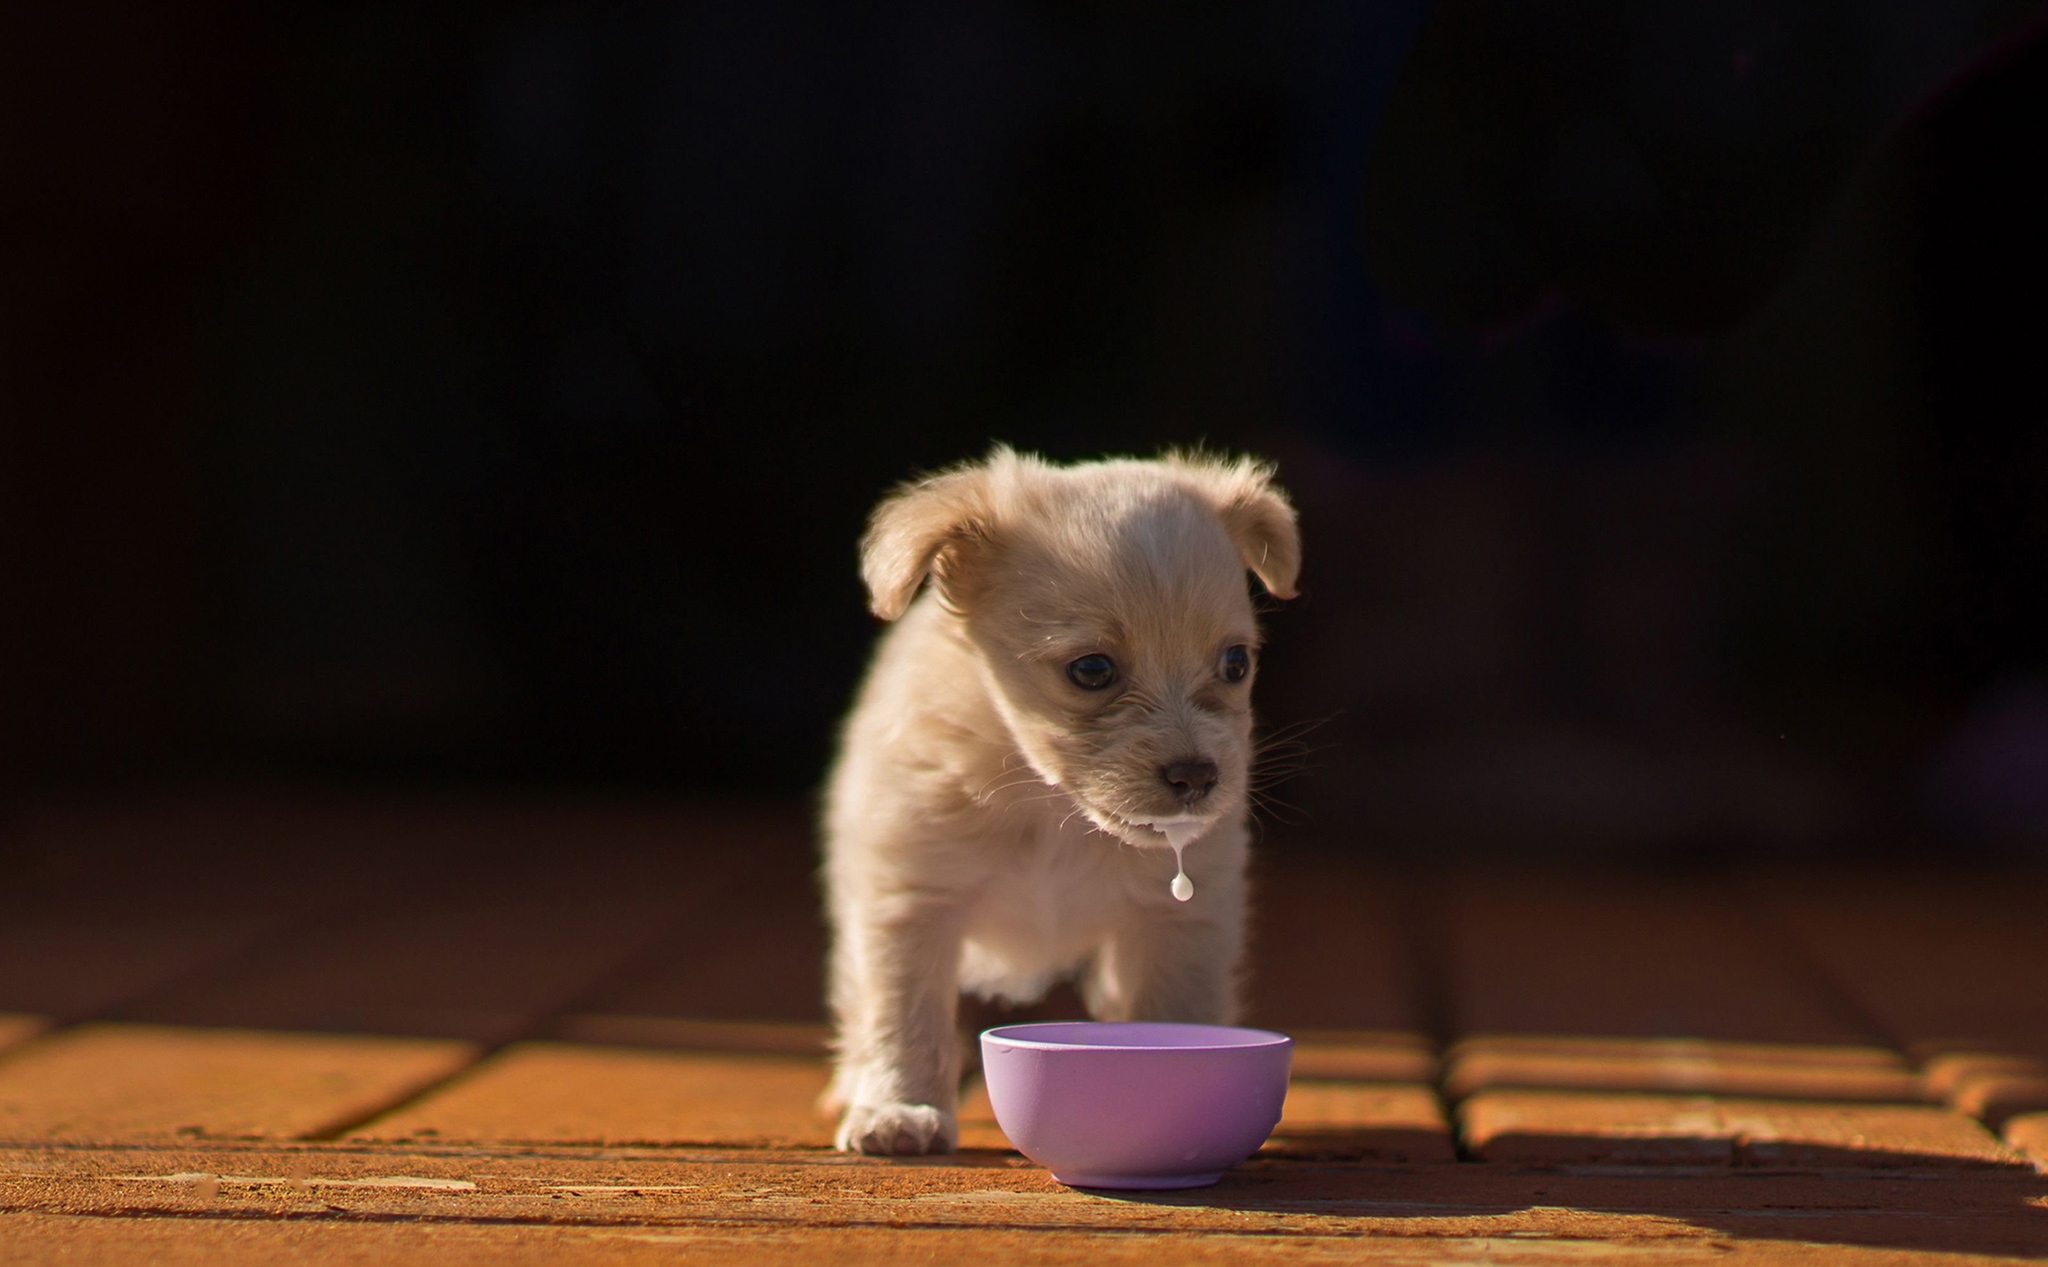 Undated handout photo issued by The Kennel Club taken by Linda Storm from the USA, of a rescue puppy enjoying a bowl of milk, which has won 1st place in the Puppy category in the Kennel Club Dog Photographer of the Year competition.